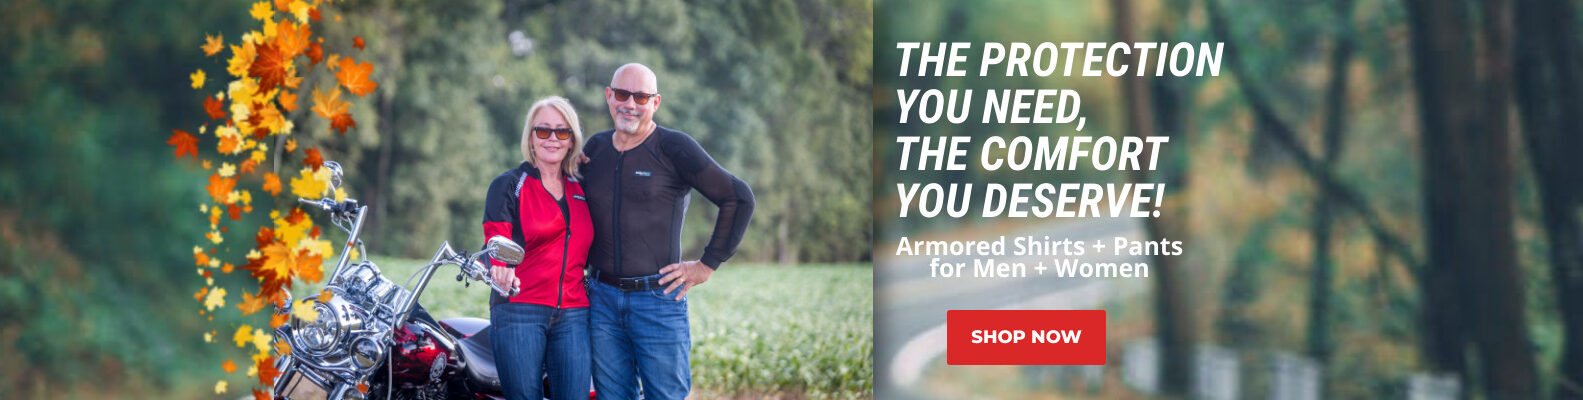 Fall Riding is in the Air - Bohn Body Armor Fall Riding Graphic